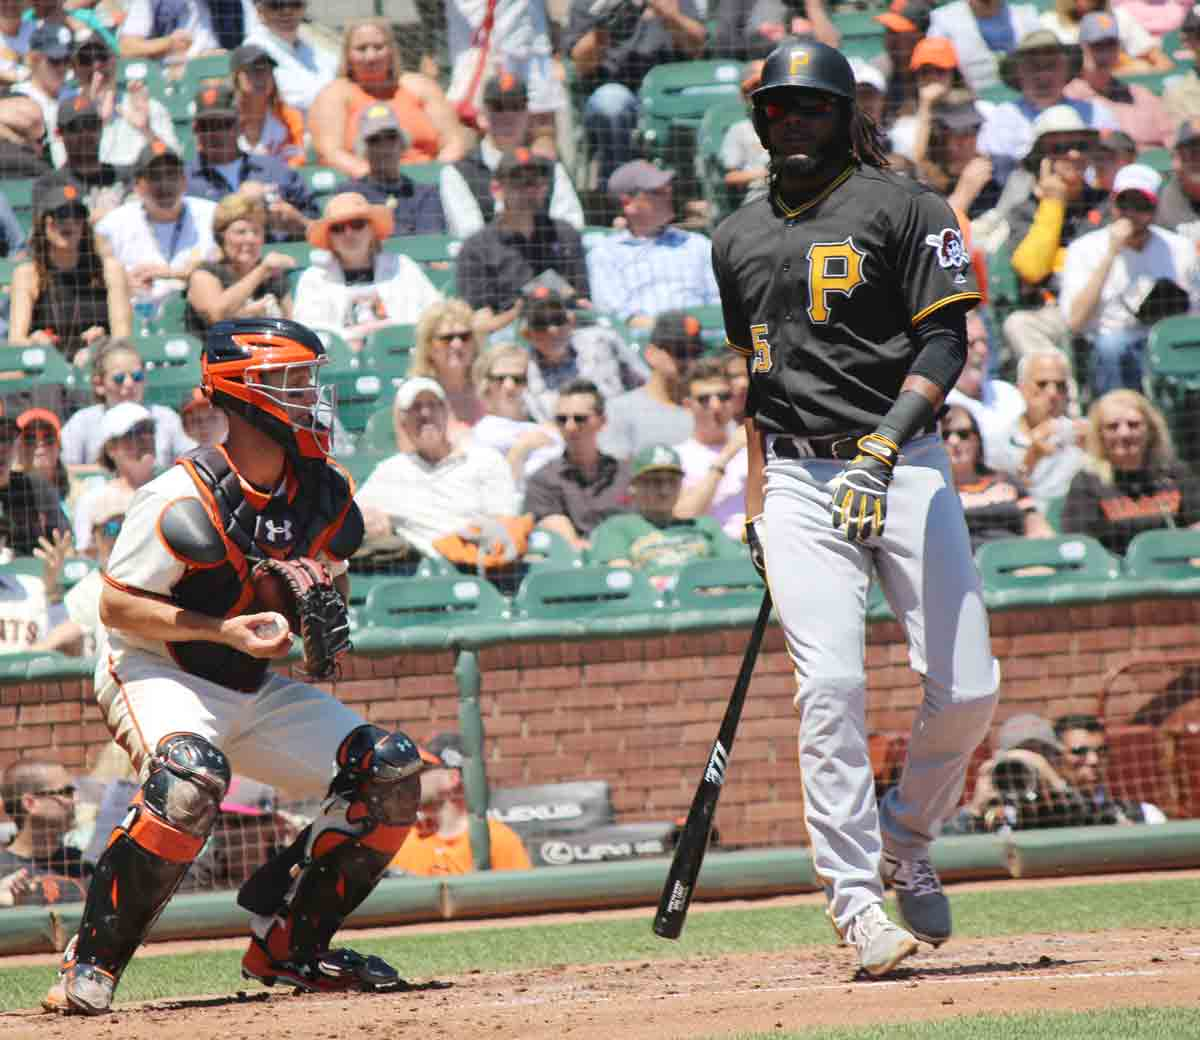 Pirates first baseman Josh Bell gets turned around when he strikes out against the San Francisco Giants on Wednesday at AT&T Park. (Jacob C. Palmer/S.F. Examiner)